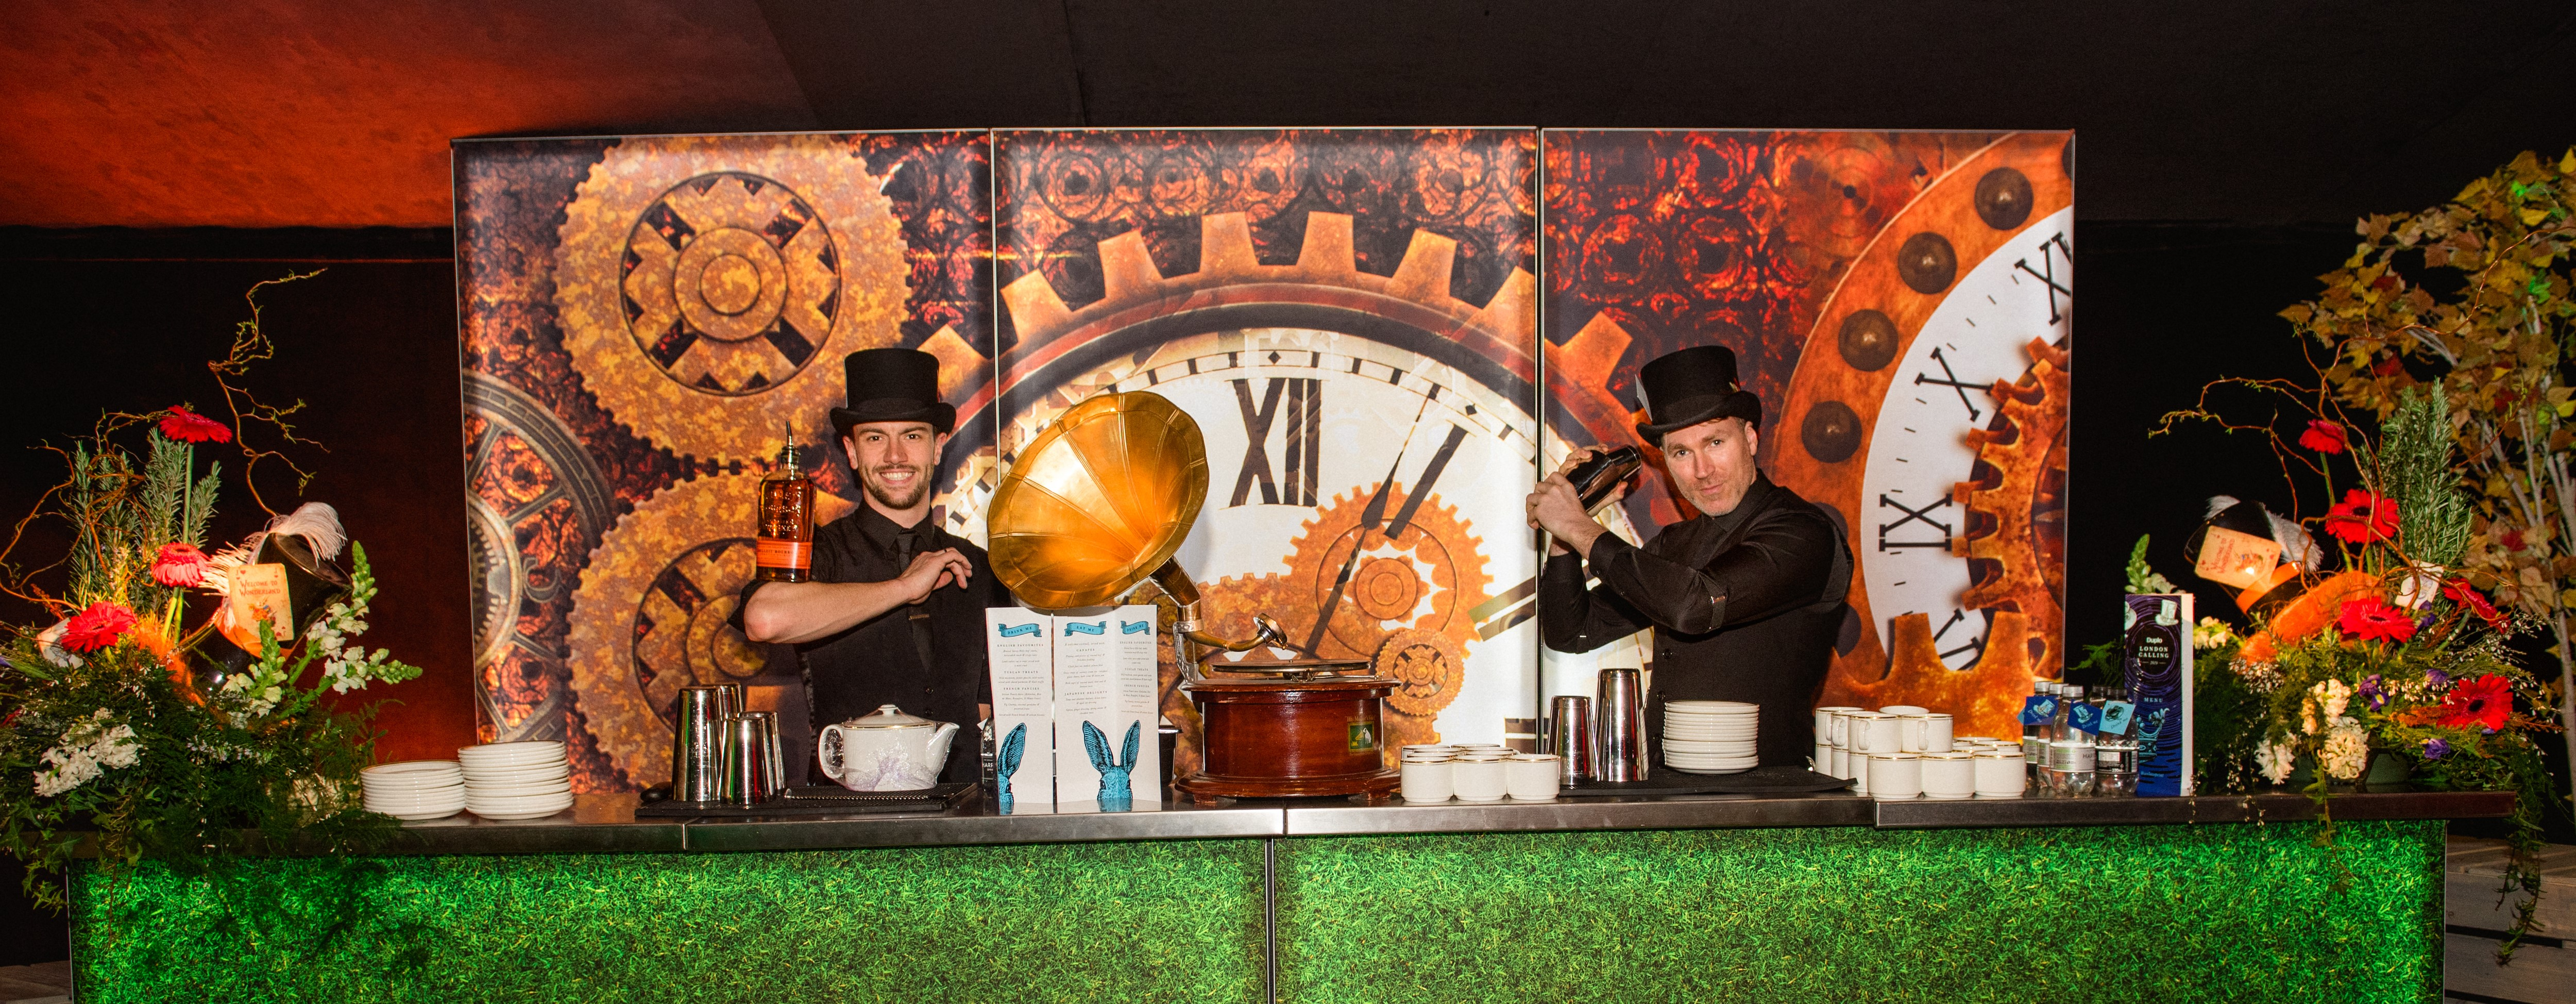 Party catering with a themed bar